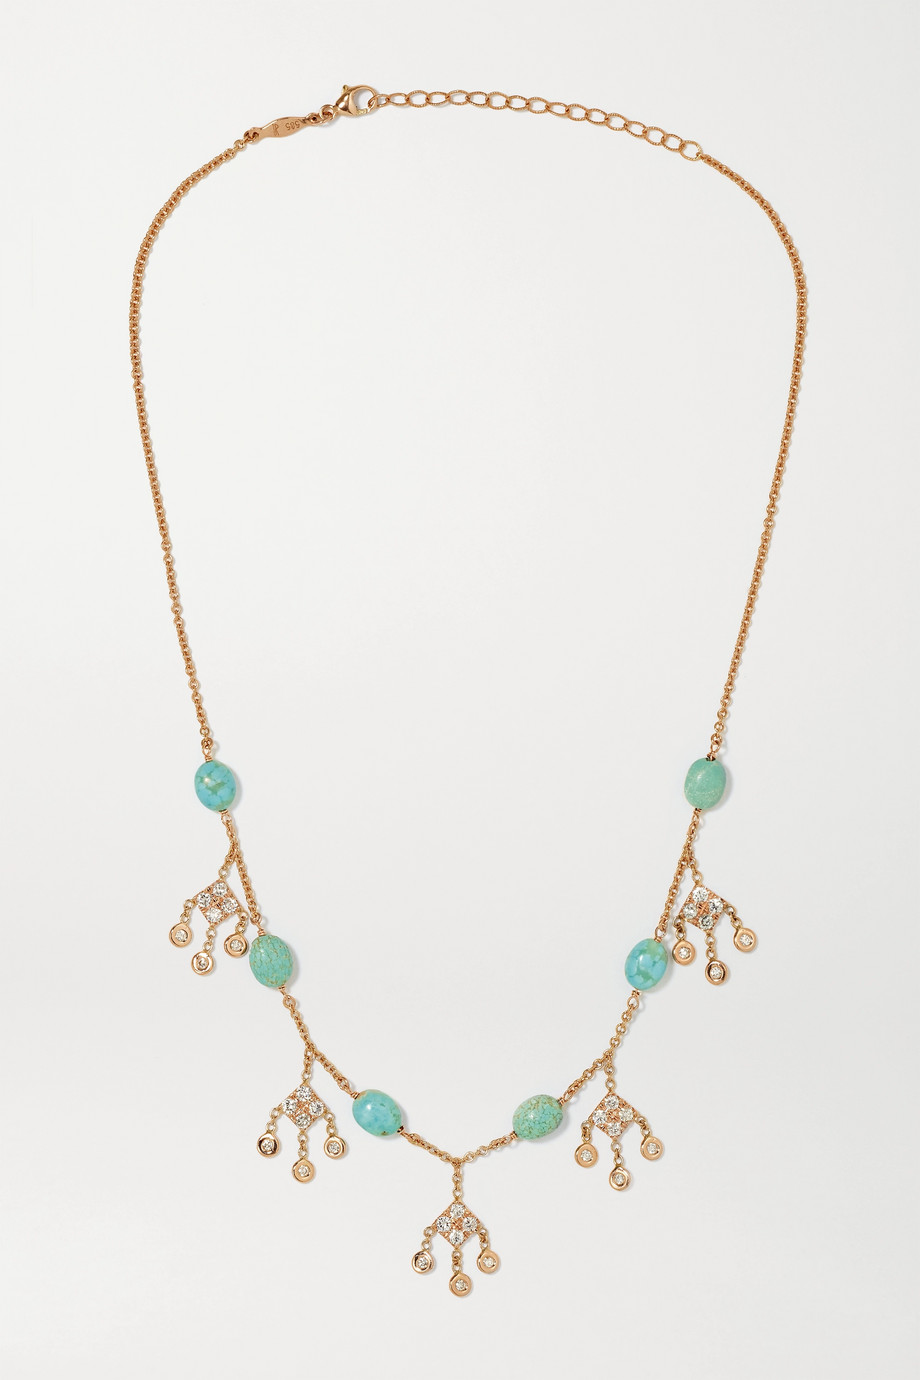 JACQUIE AICHE 14-karat rose gold, turquoise and diamond necklace